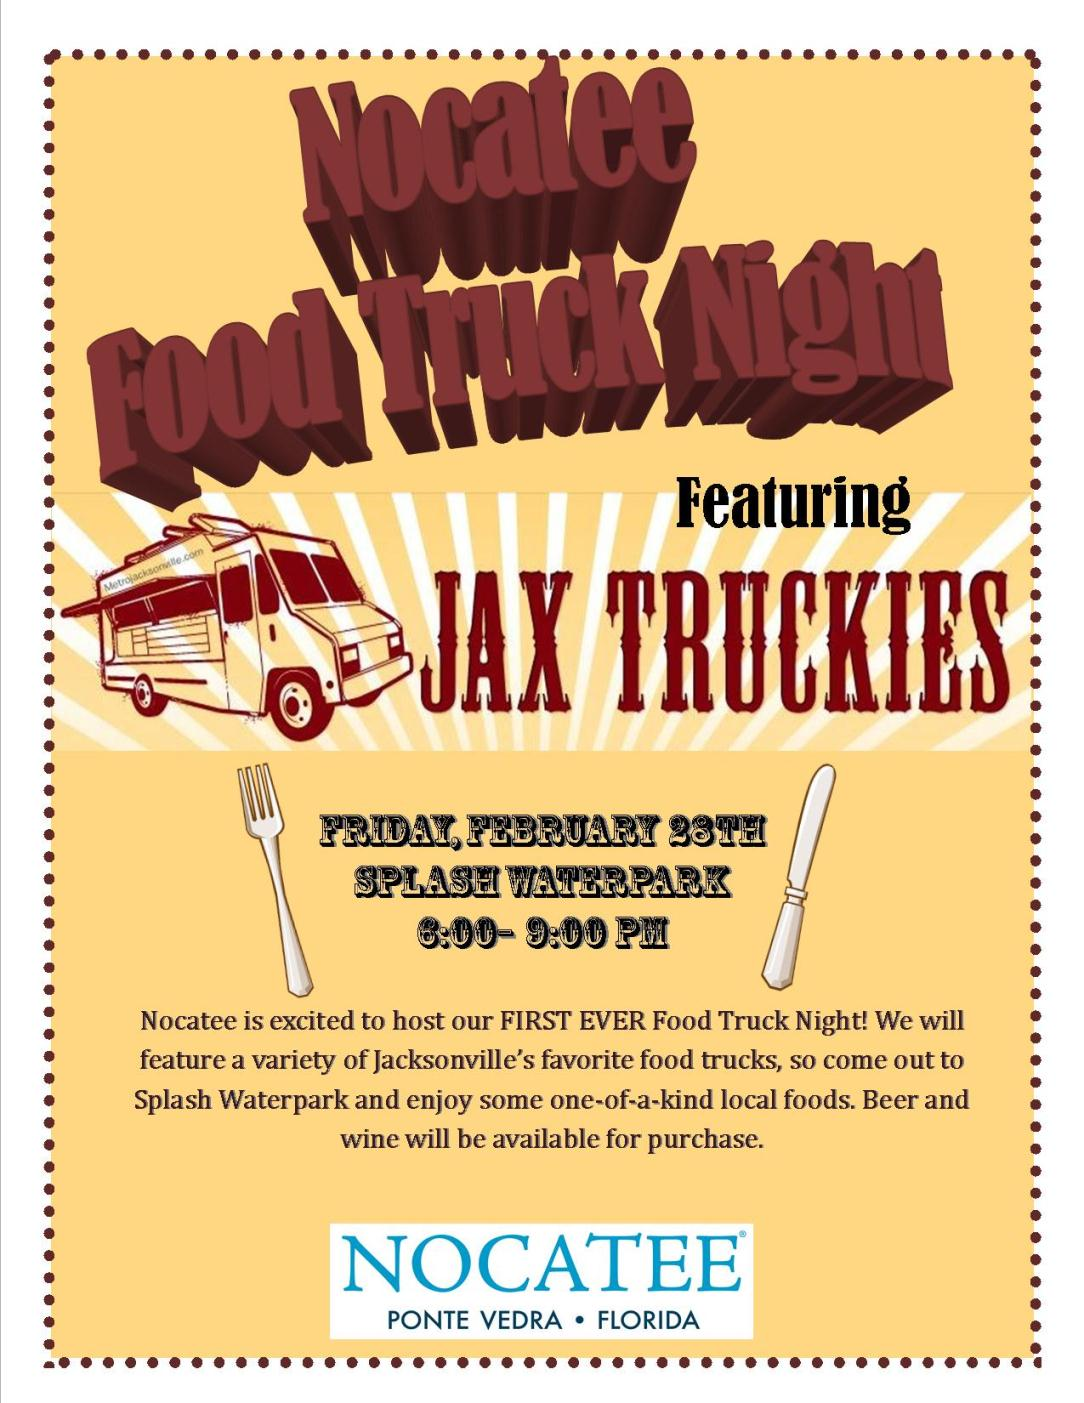 Nocatee Food Truck Night 2014